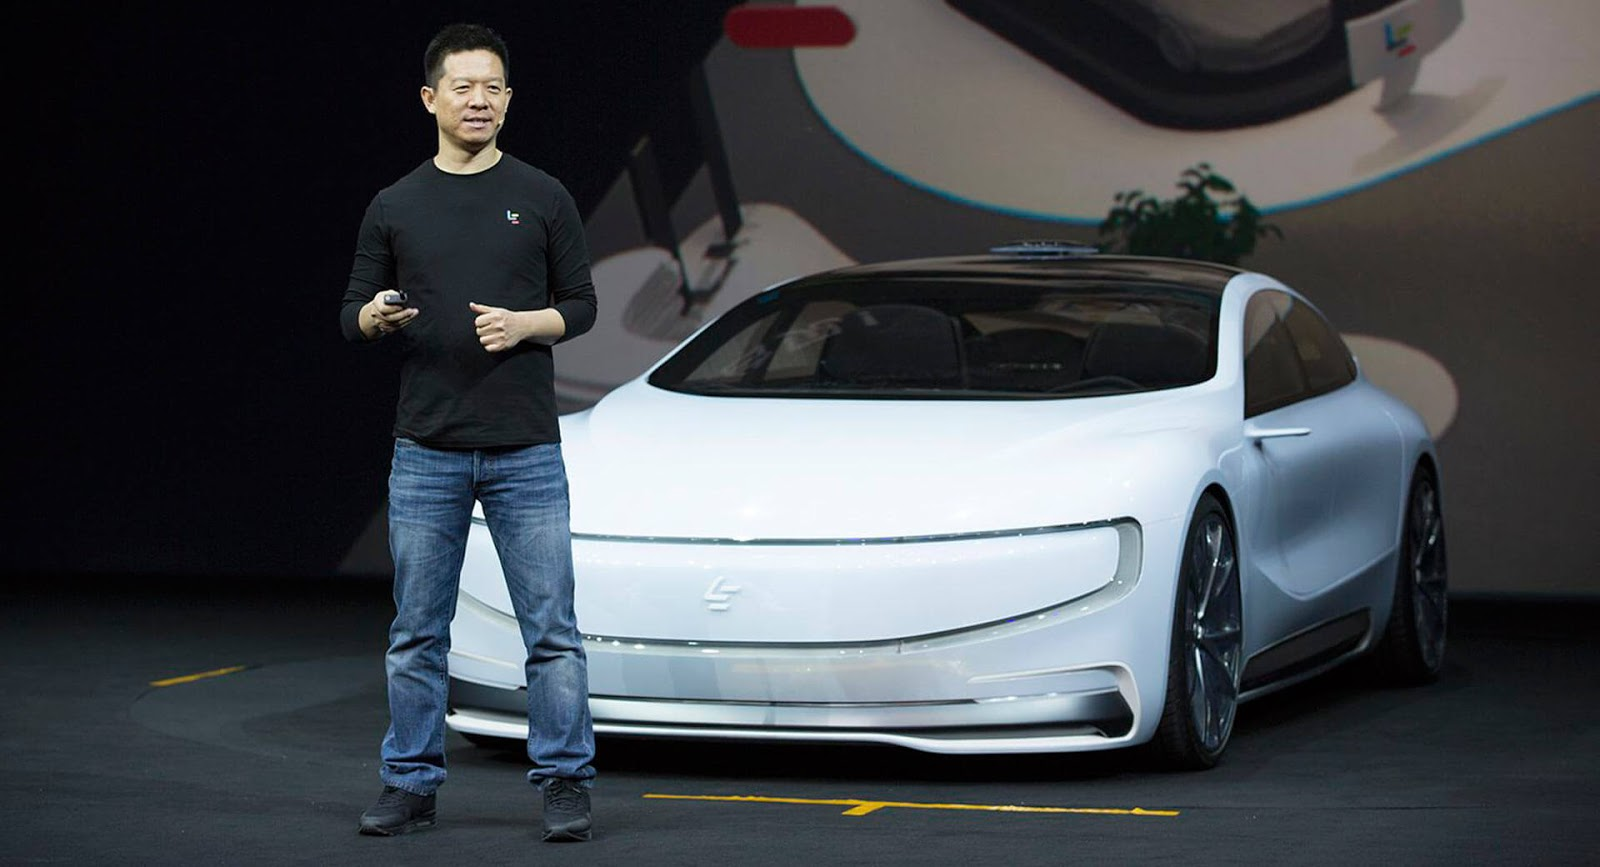 LeEco's founder ordered to return to China